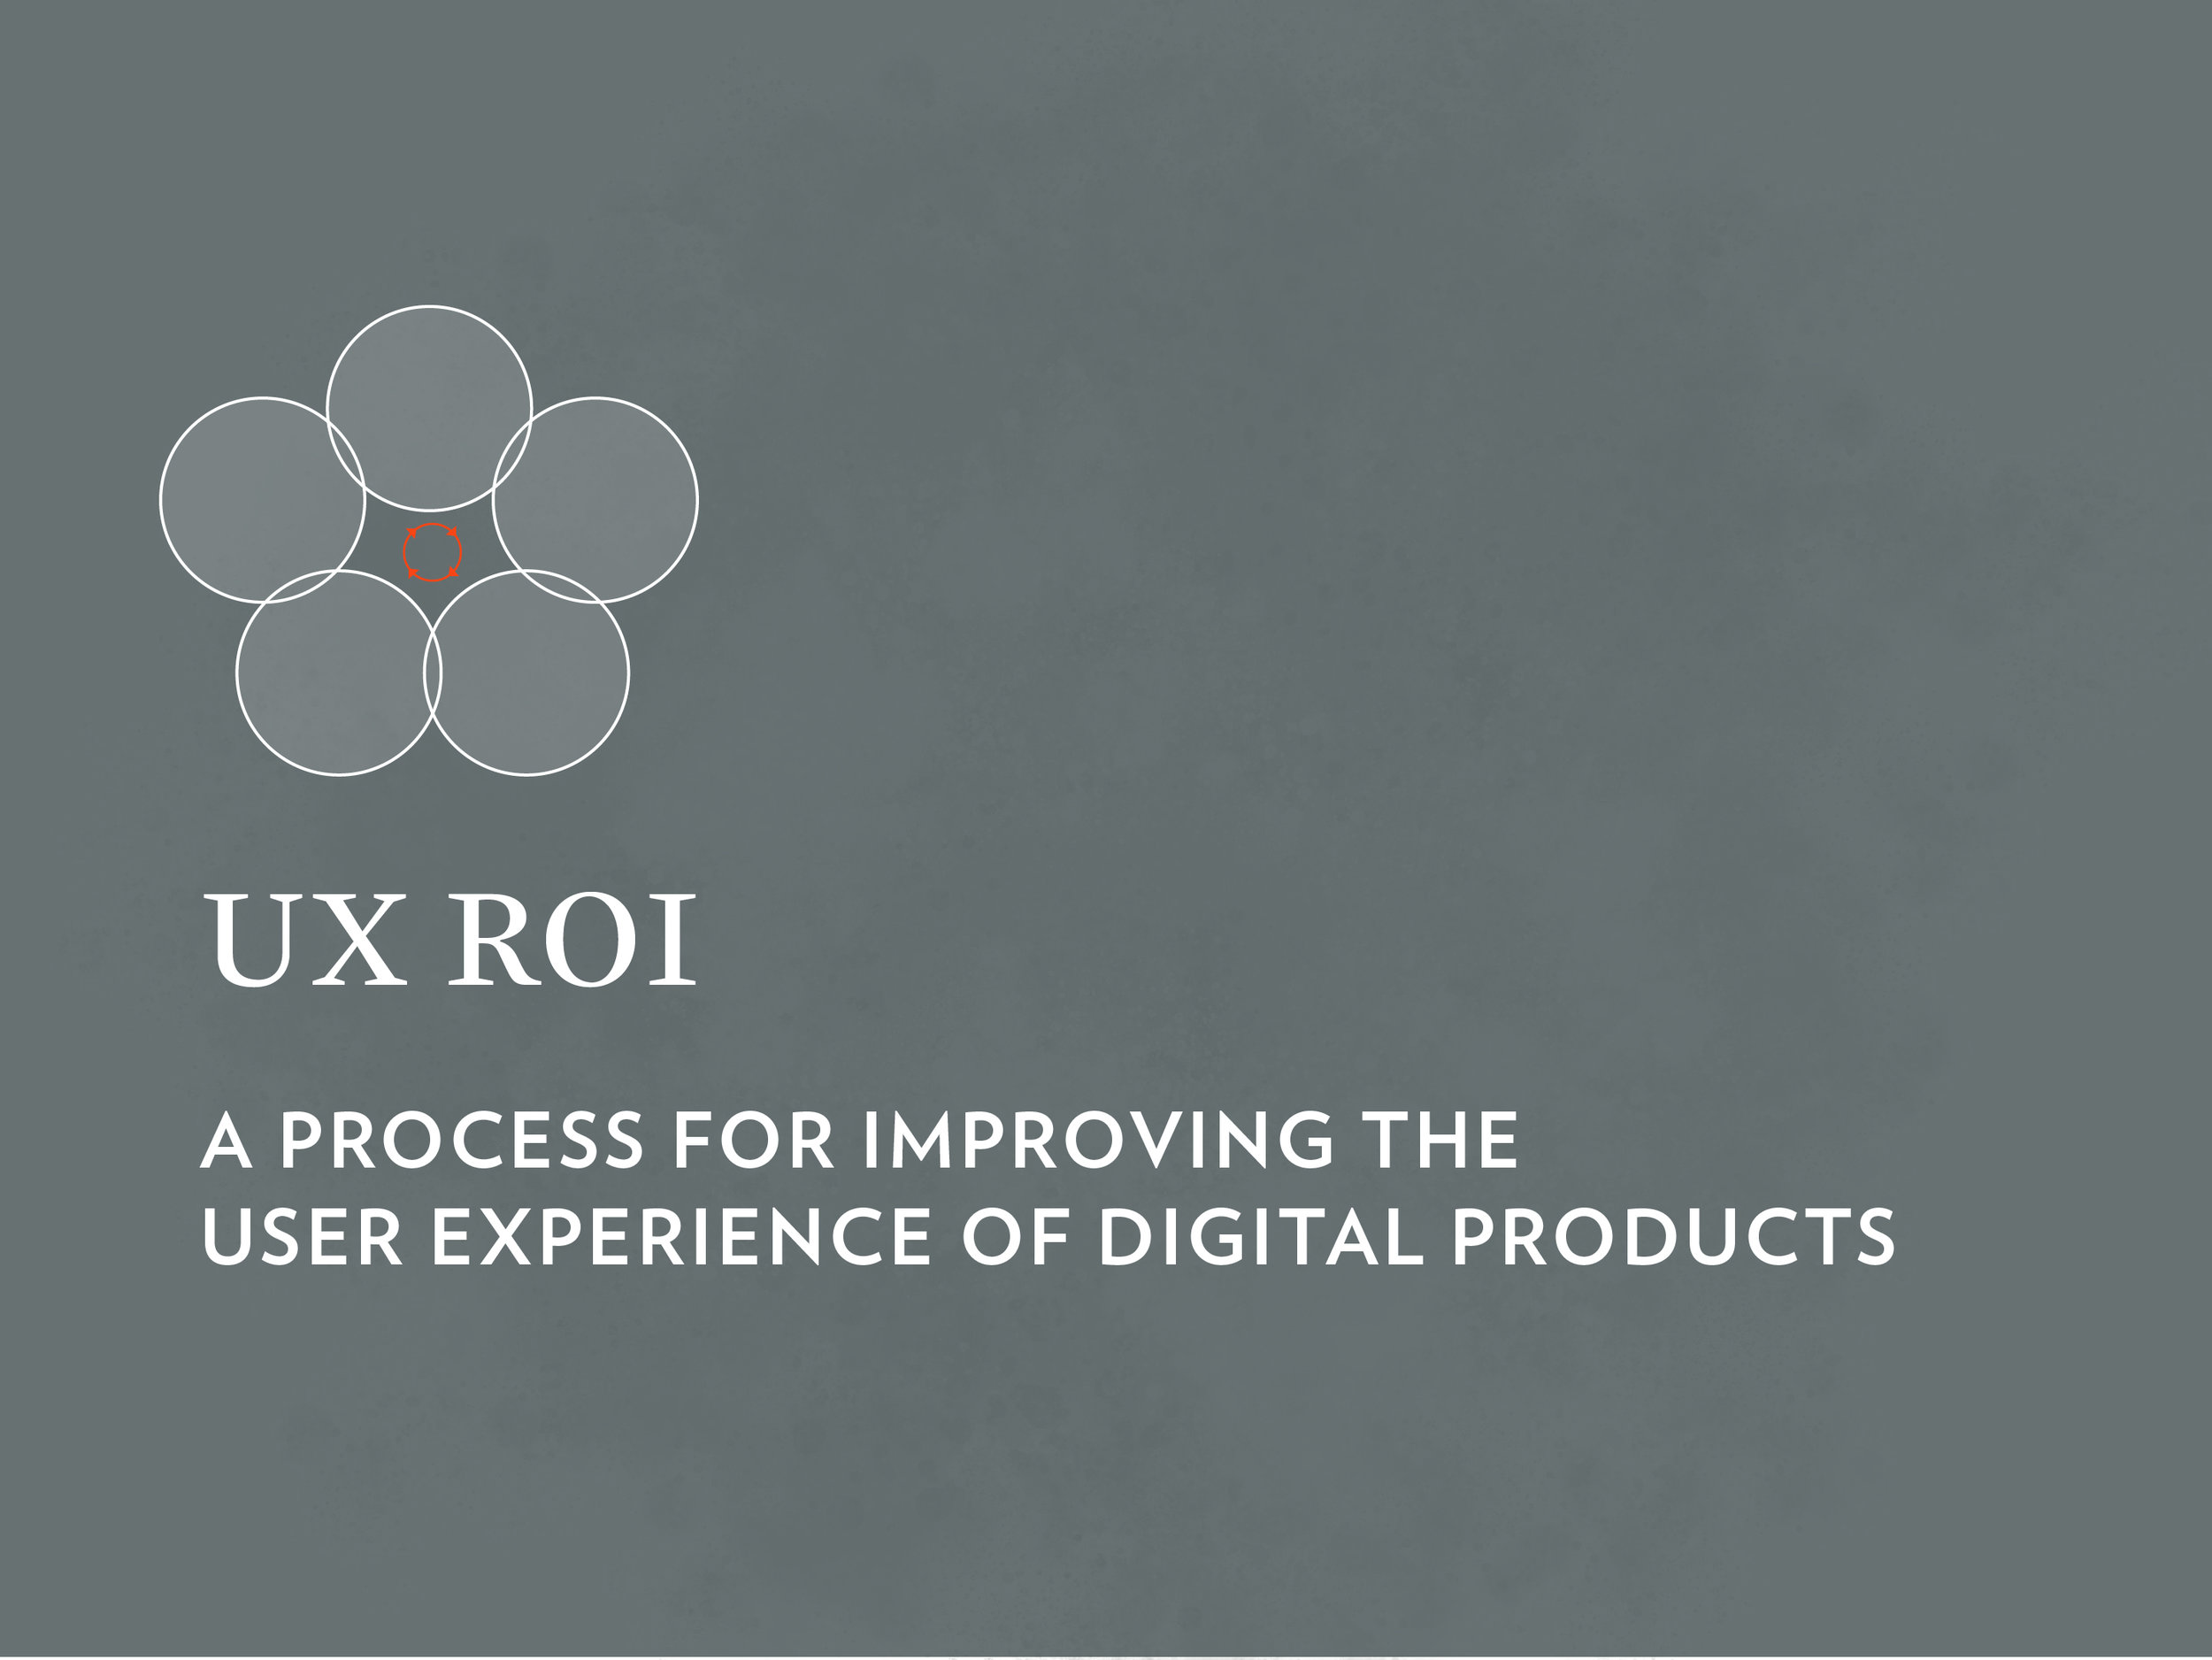 UX Workshop: UX ROI - A Process for Improving the User Experience of Digital Products